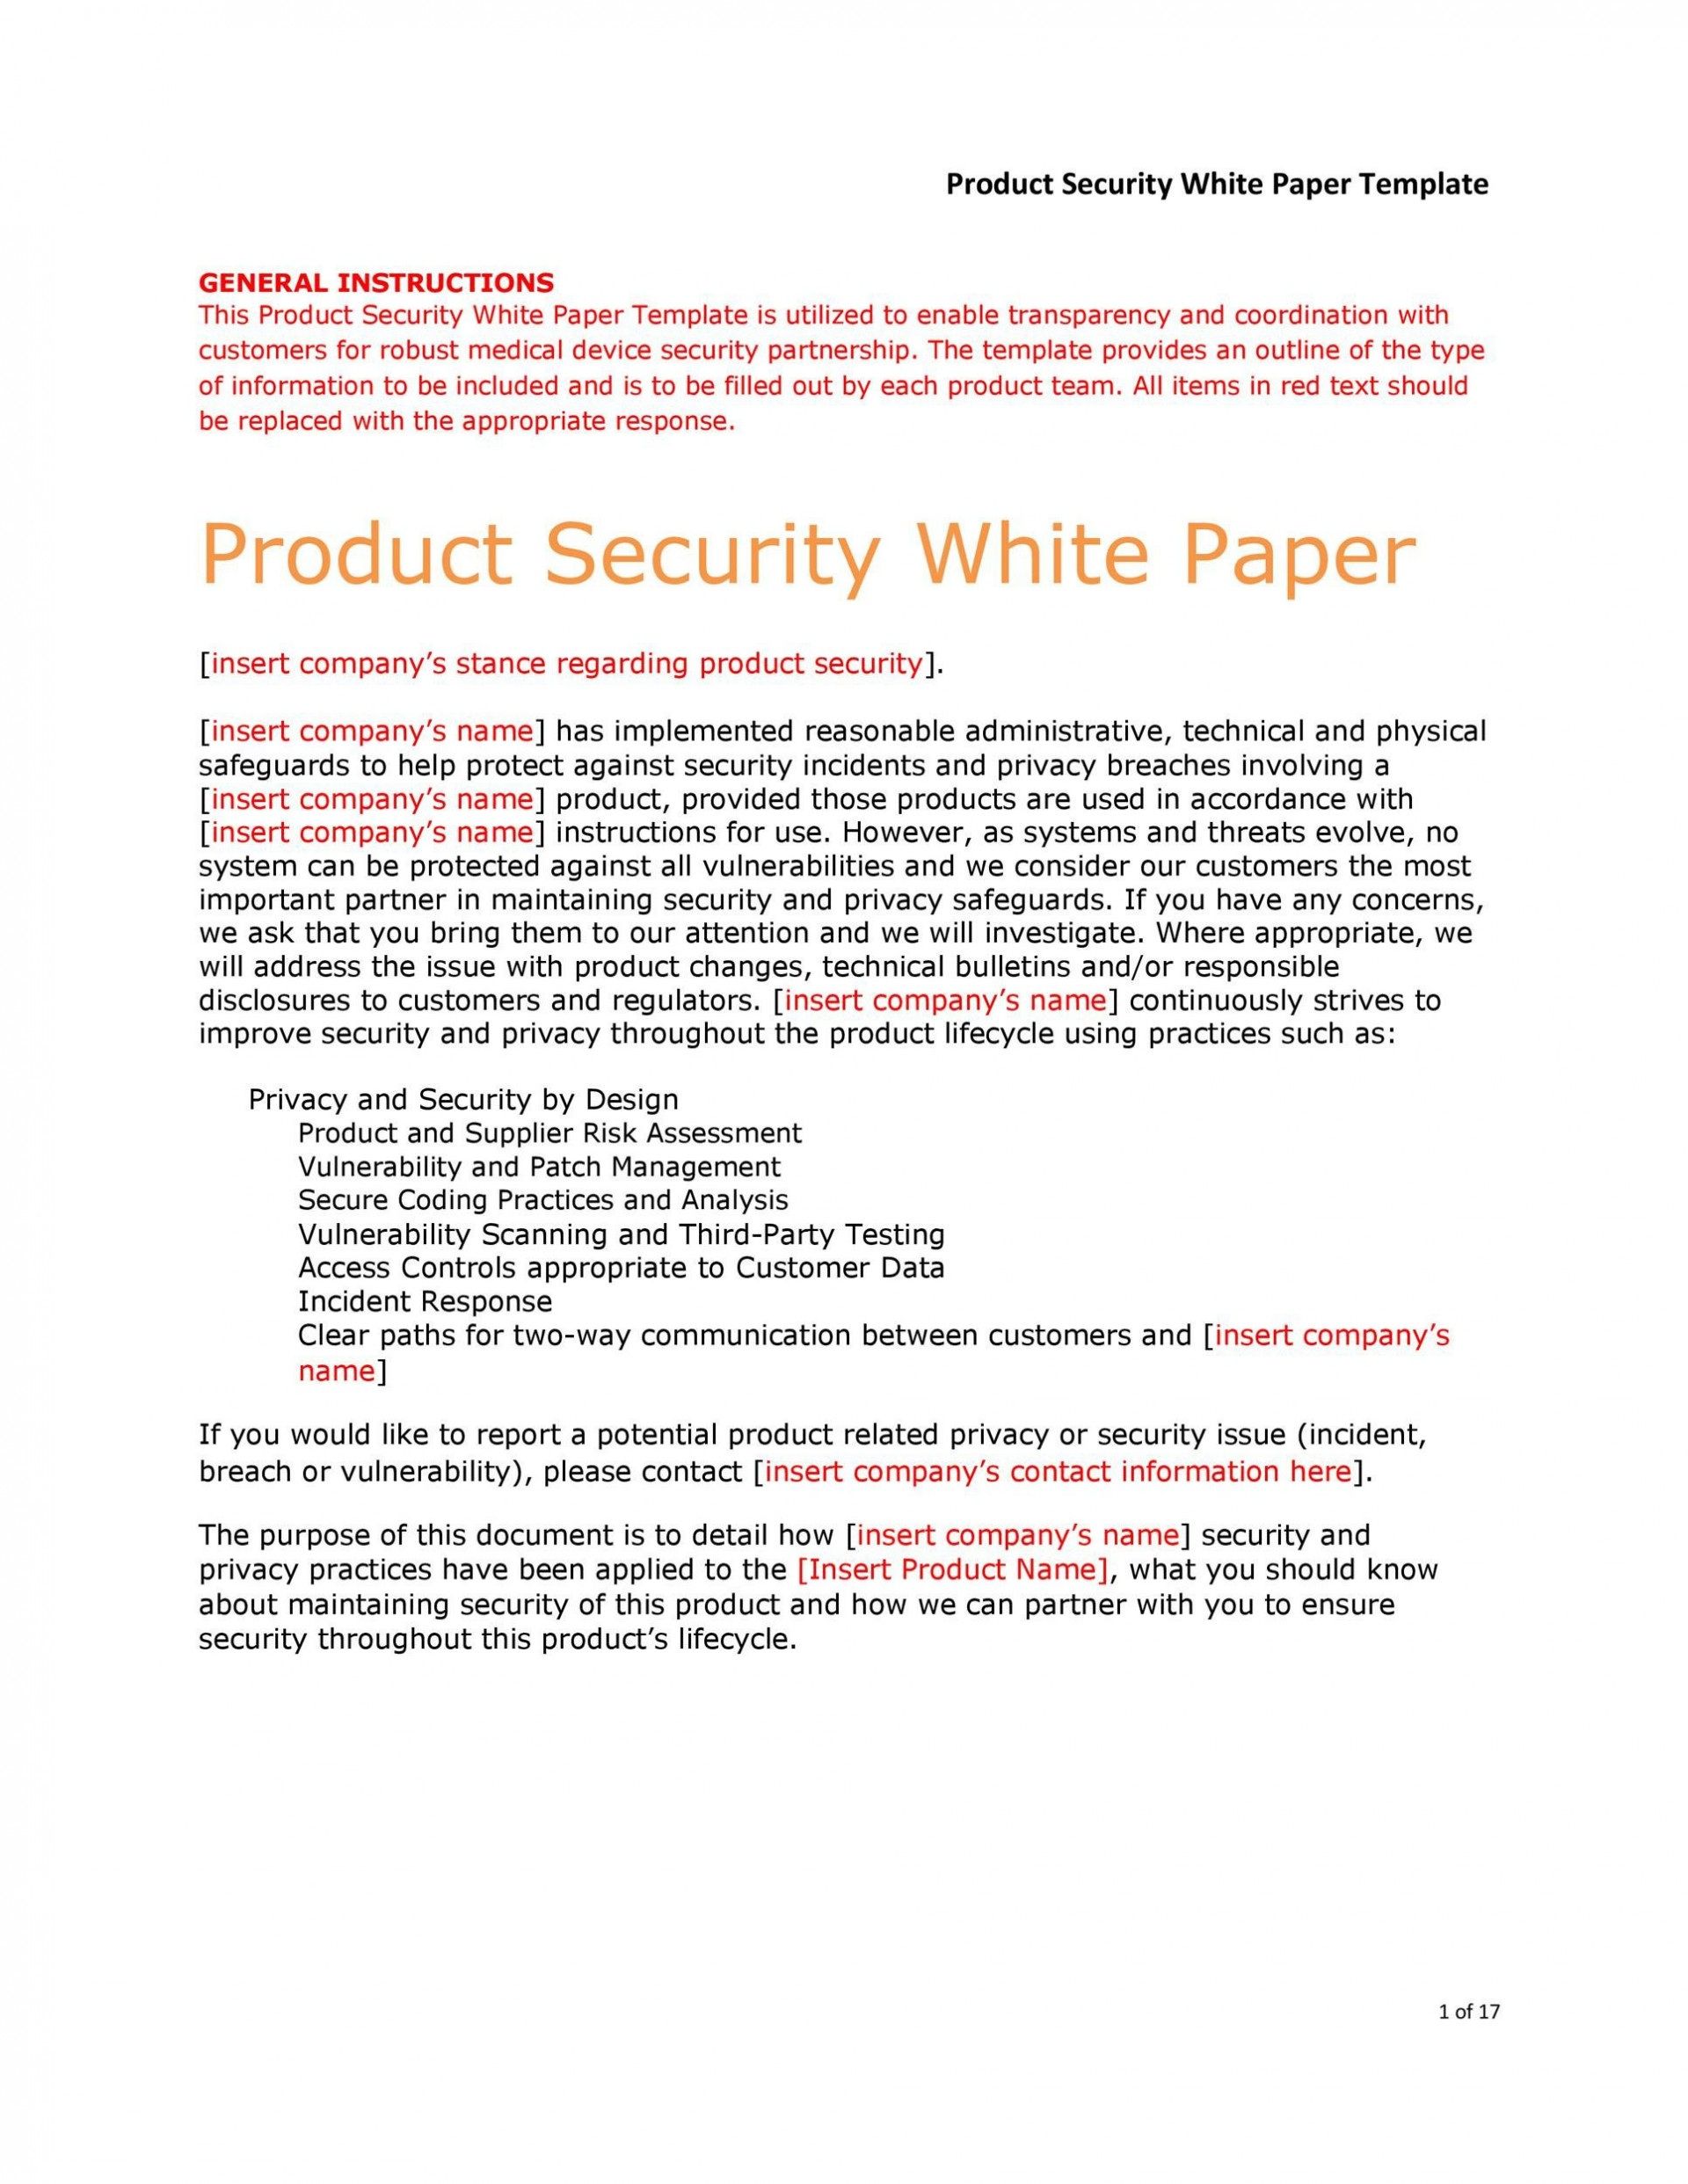 009 Excellent White Paper Outline Template Example  Free1920